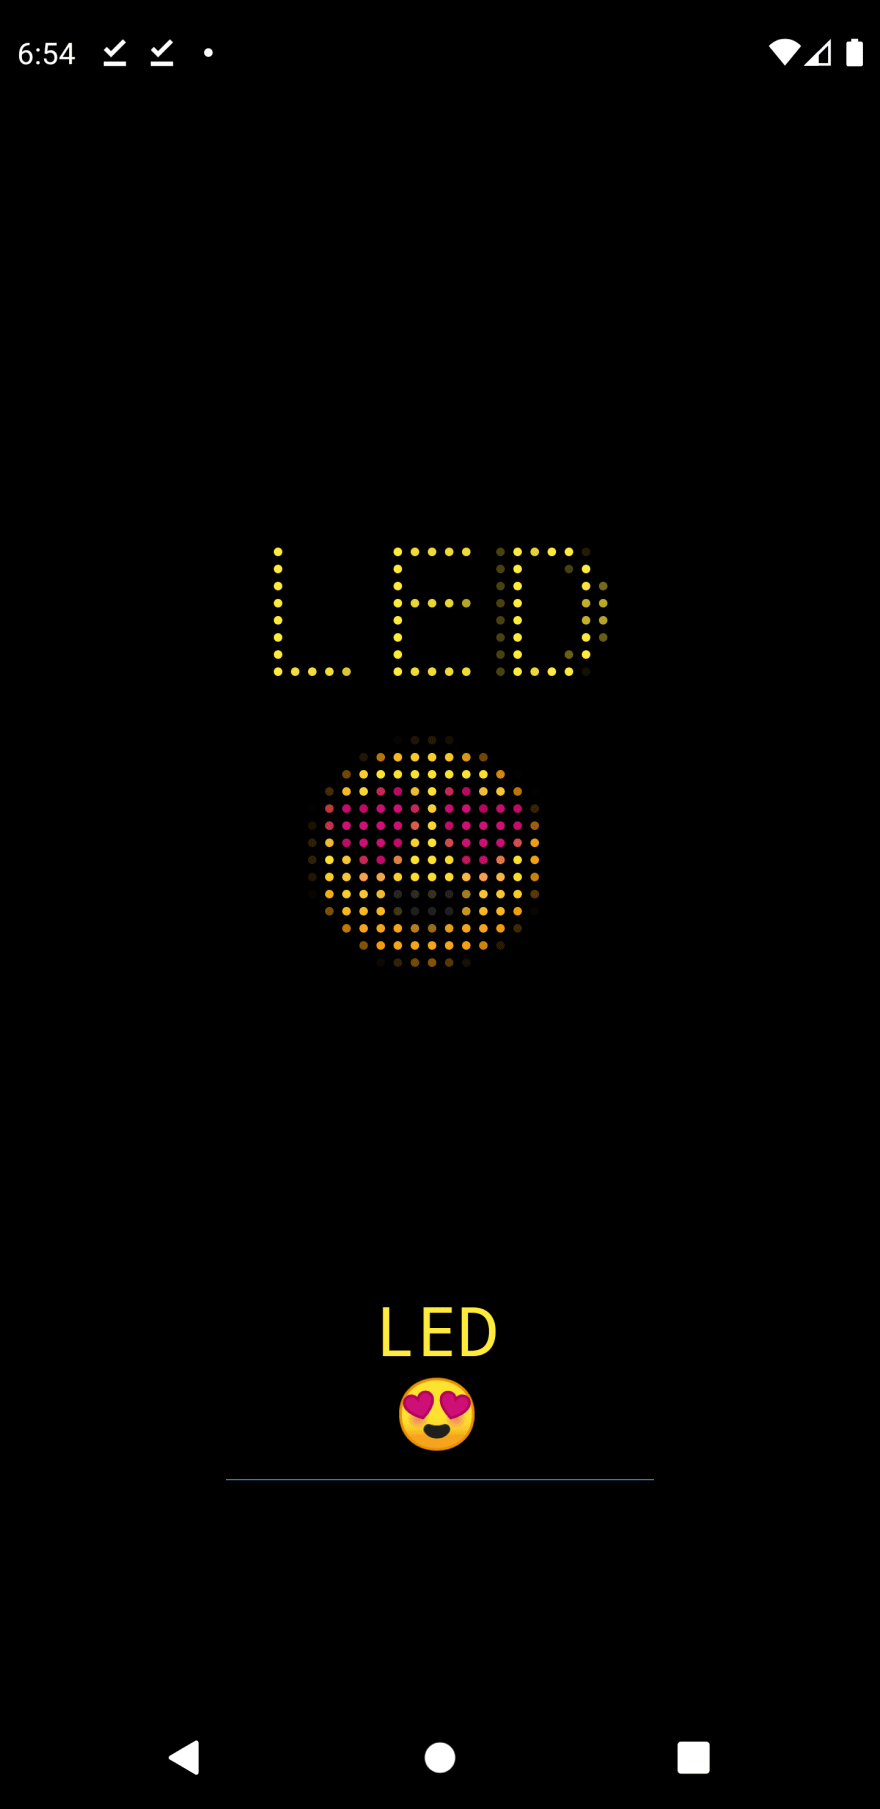 Flutter LED display with text input